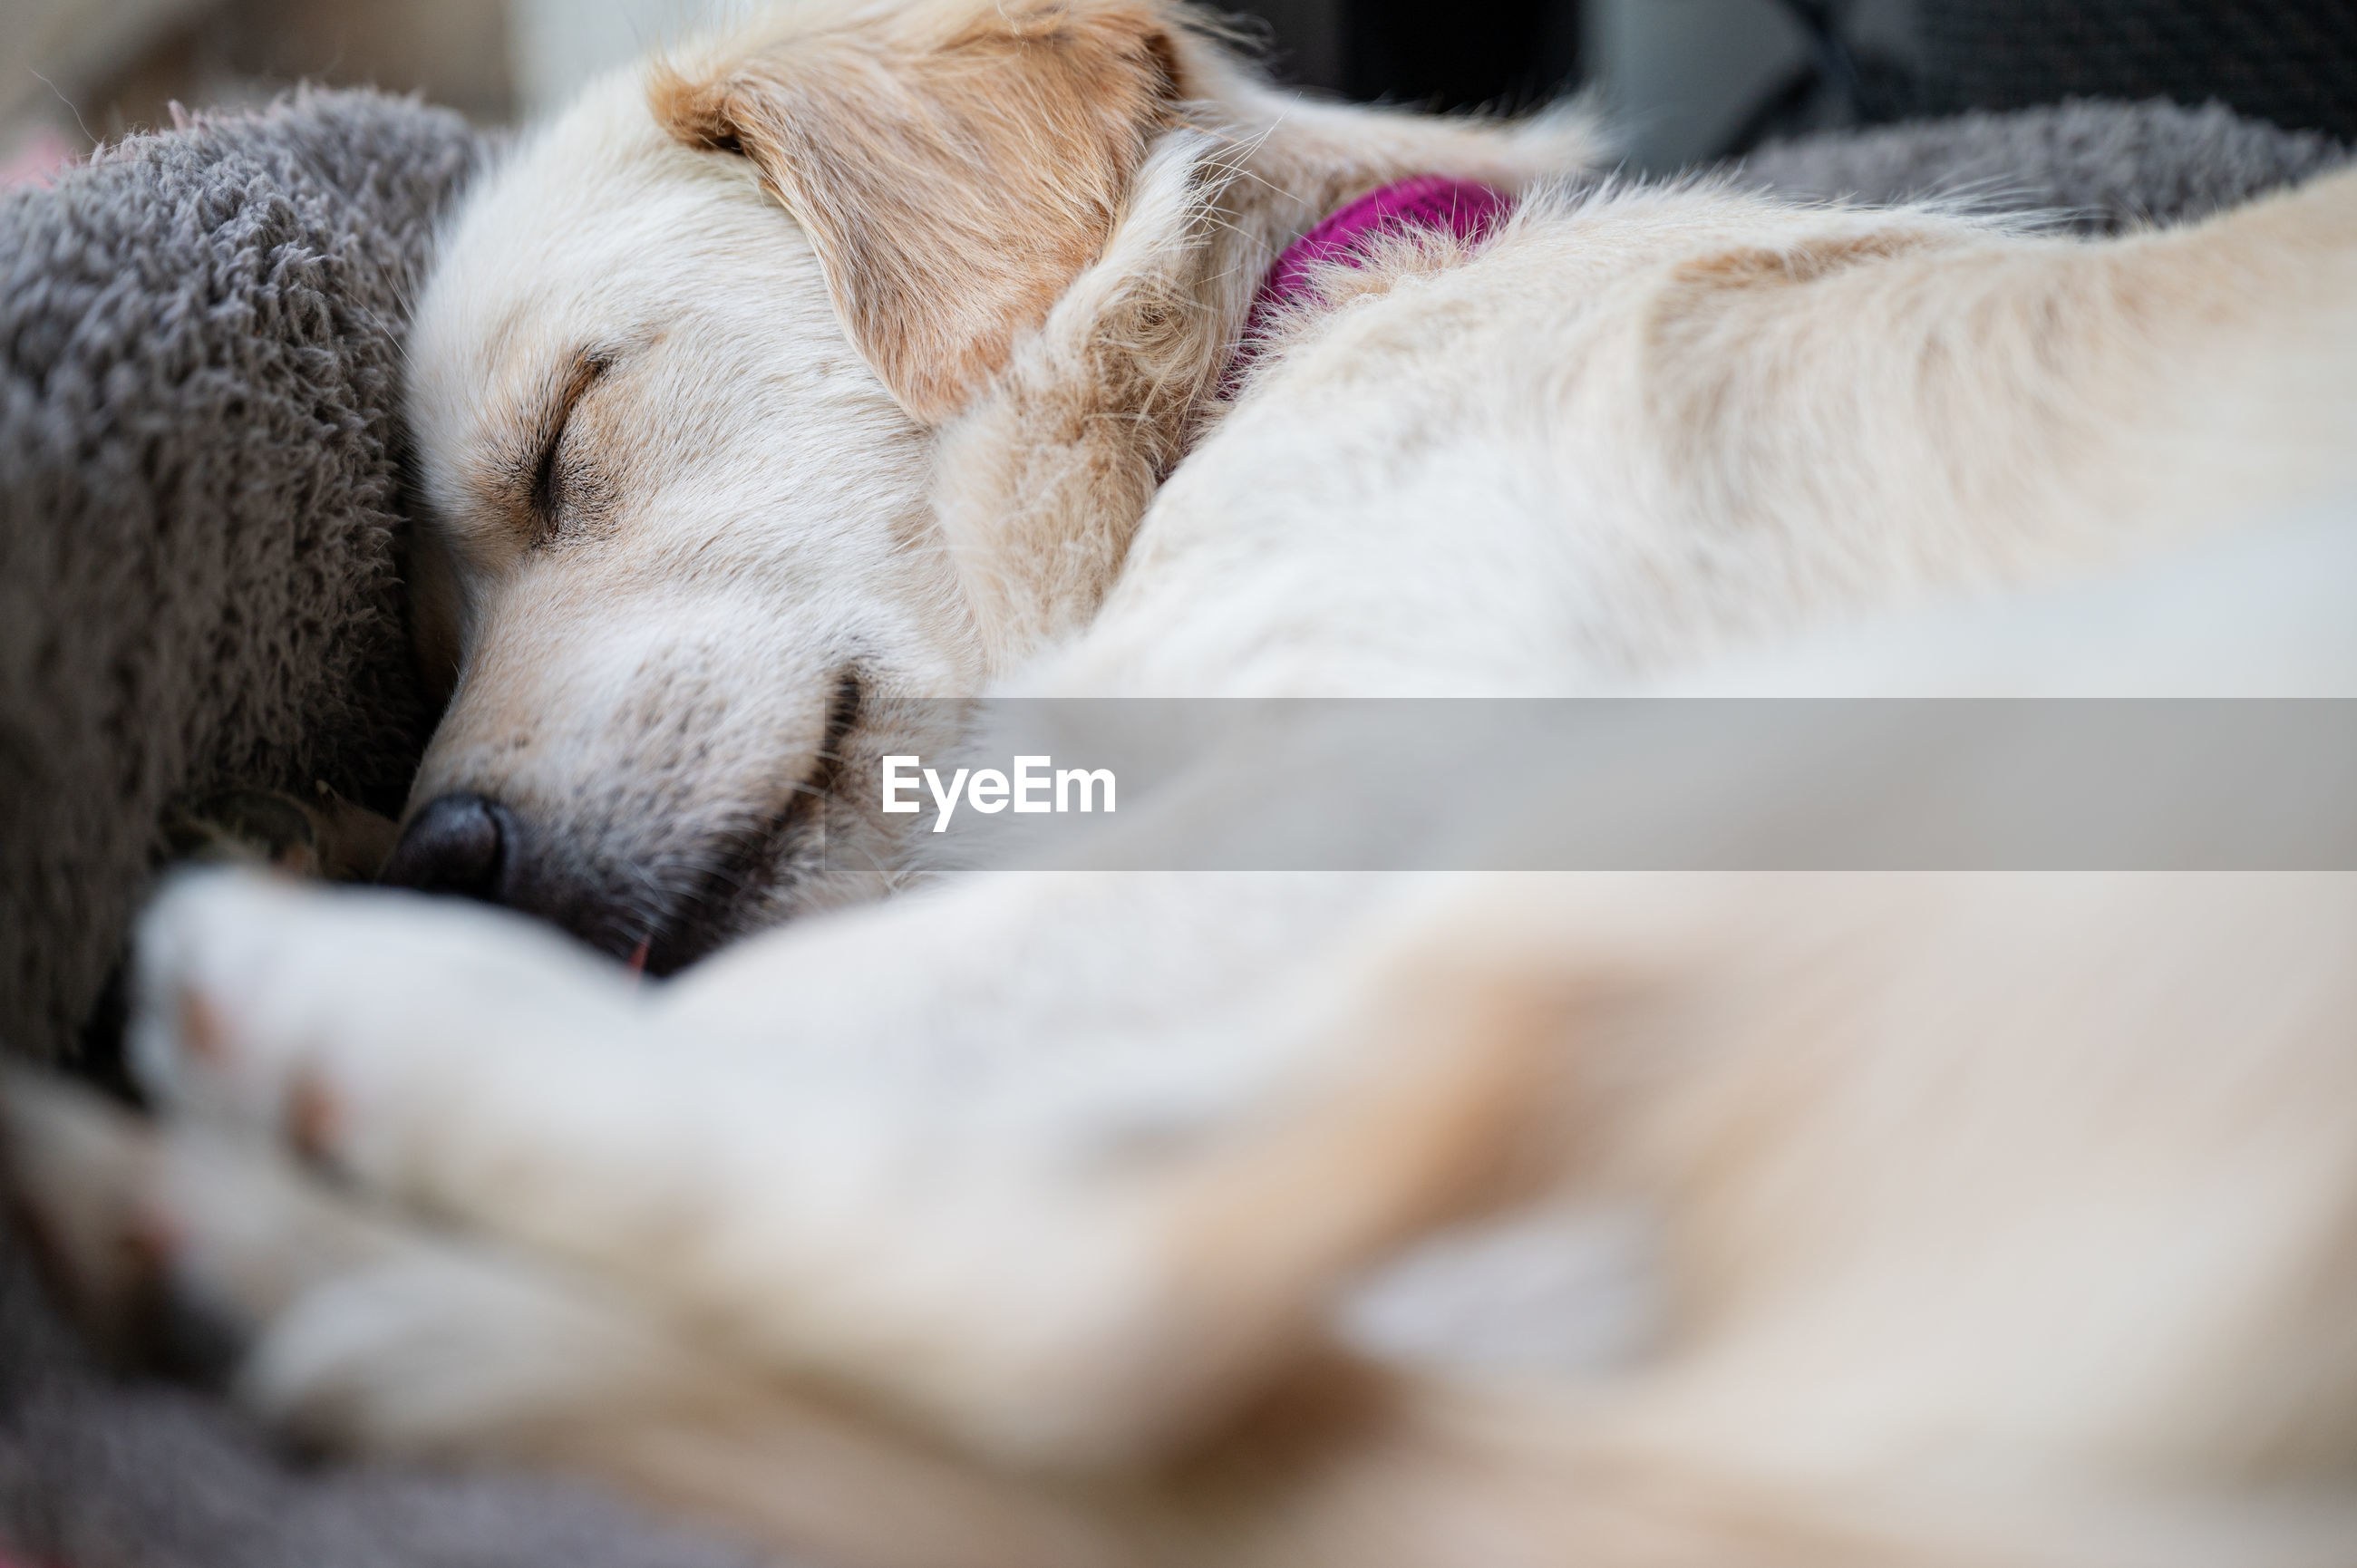 CLOSE-UP OF DOG SLEEPING IN THE BED